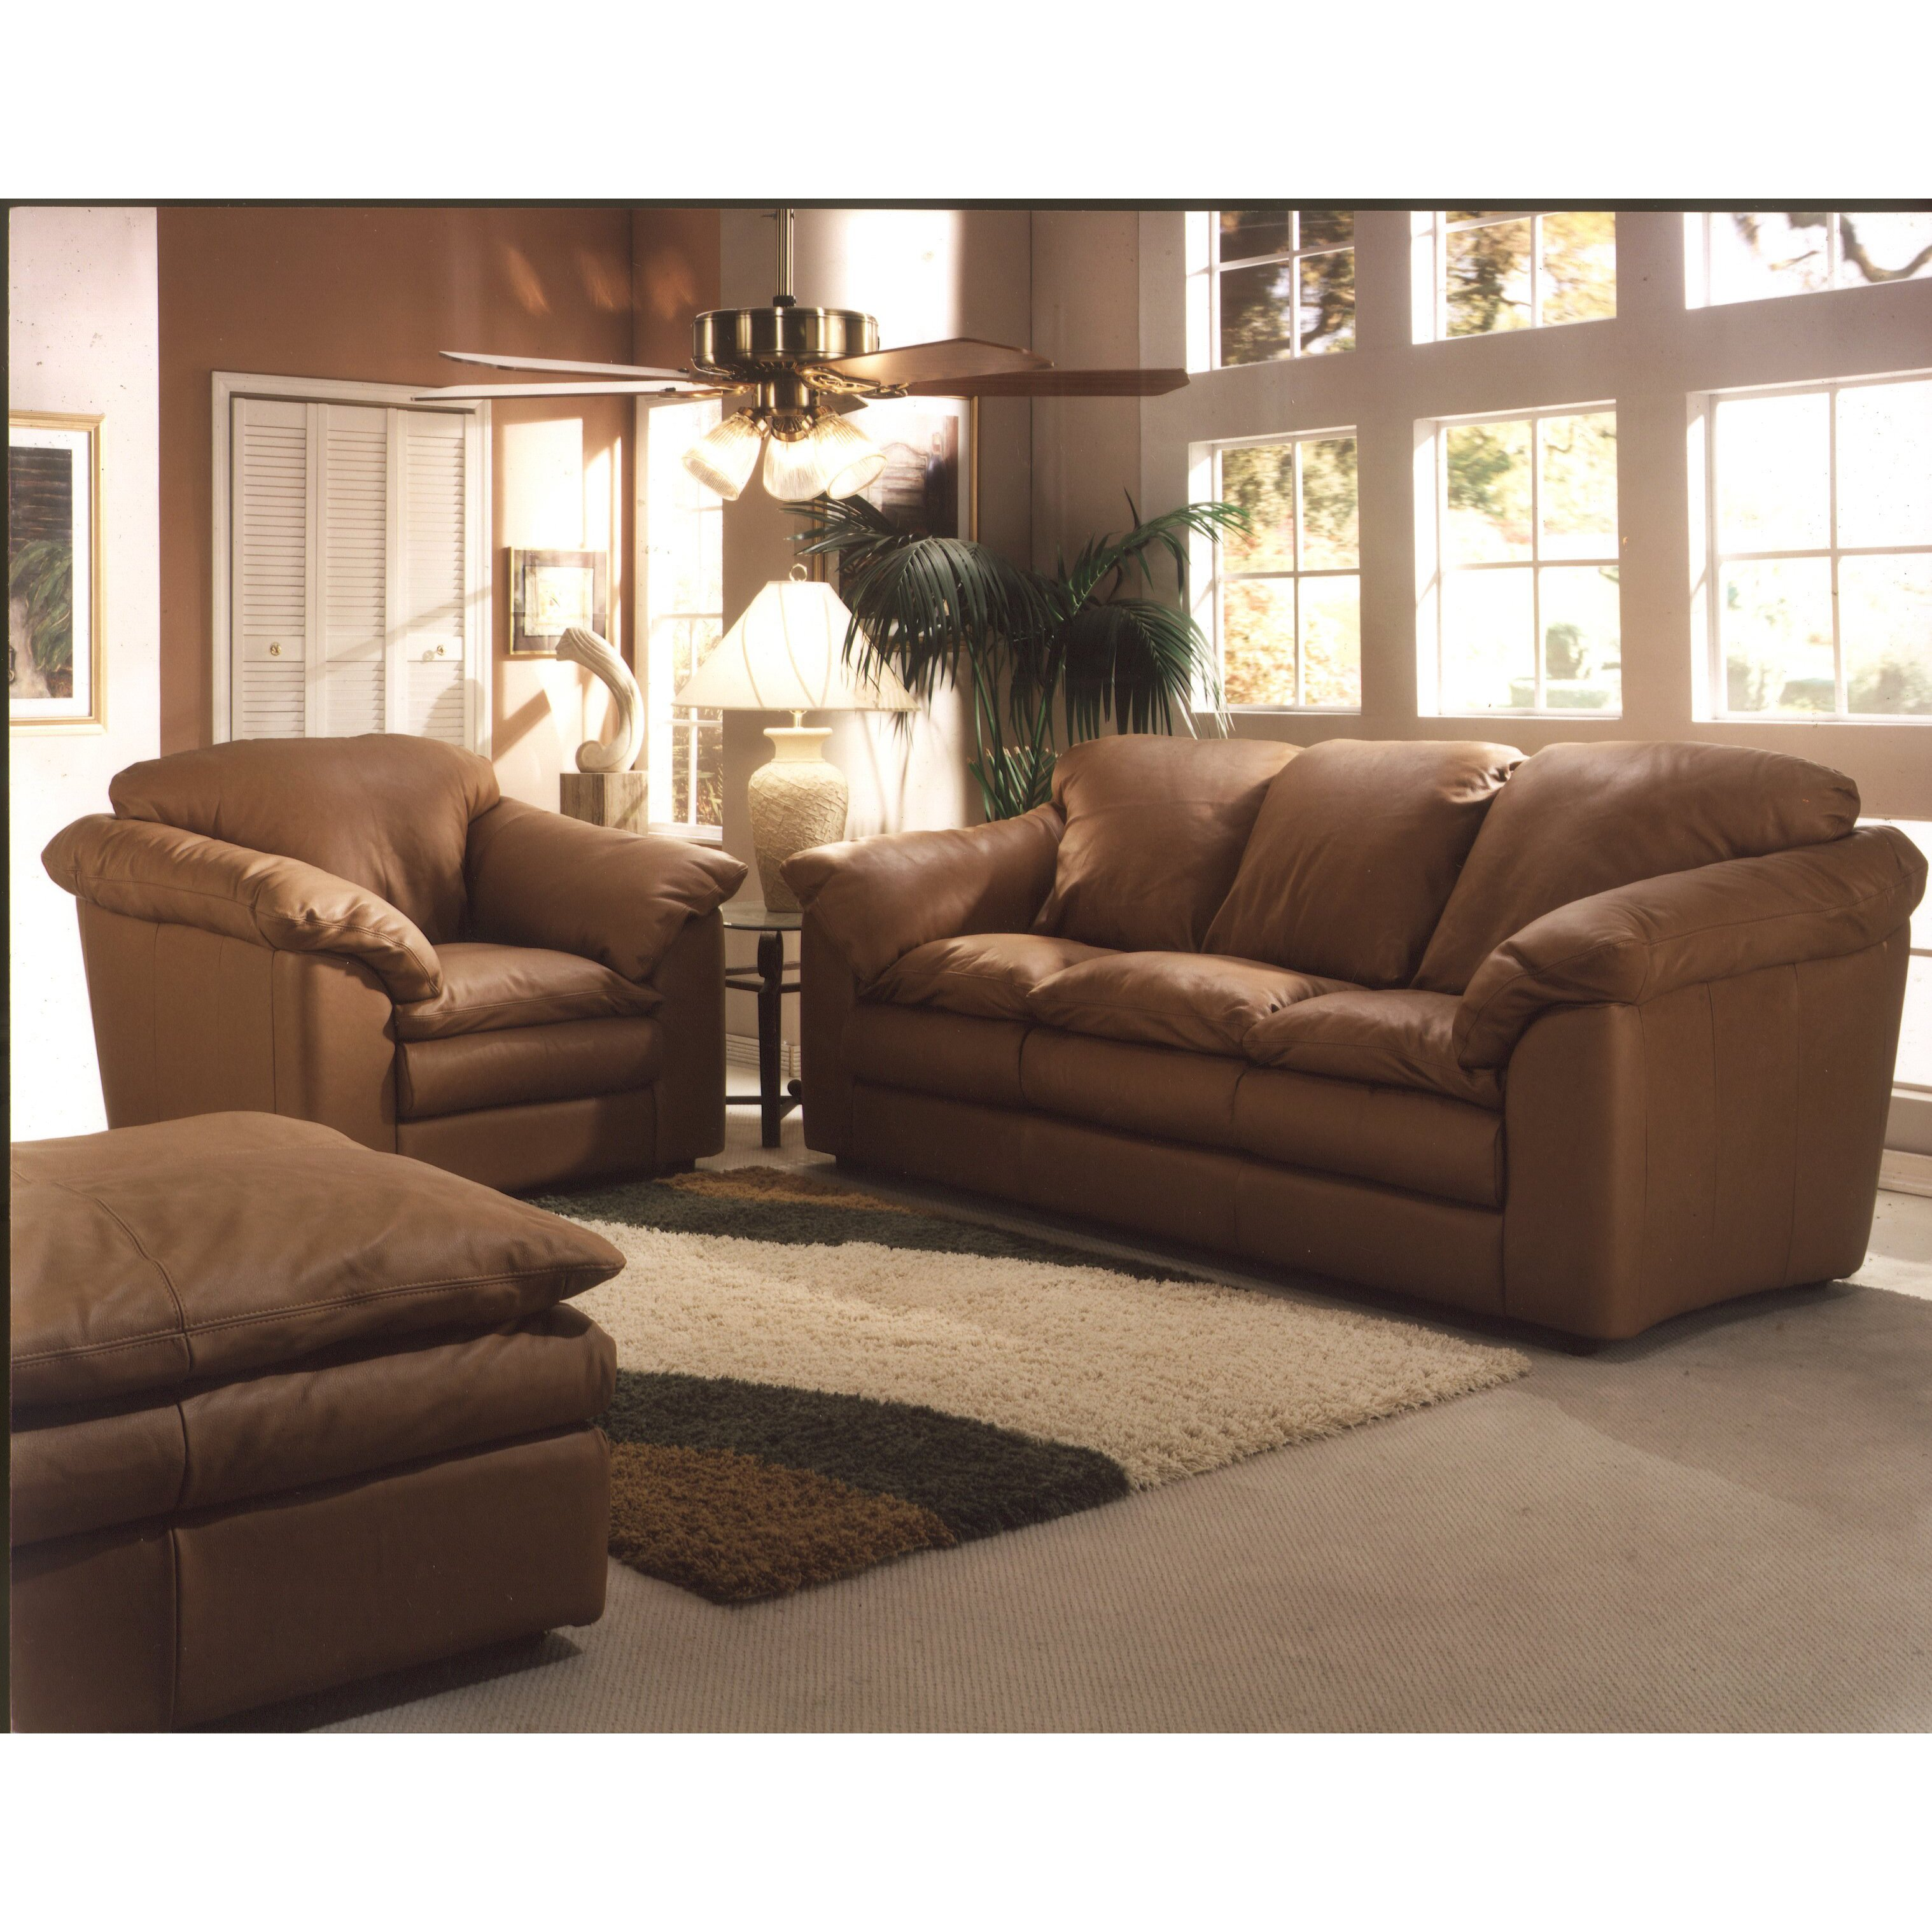 Omnia Leather Oregon 3 Seat Leather Living Room Set